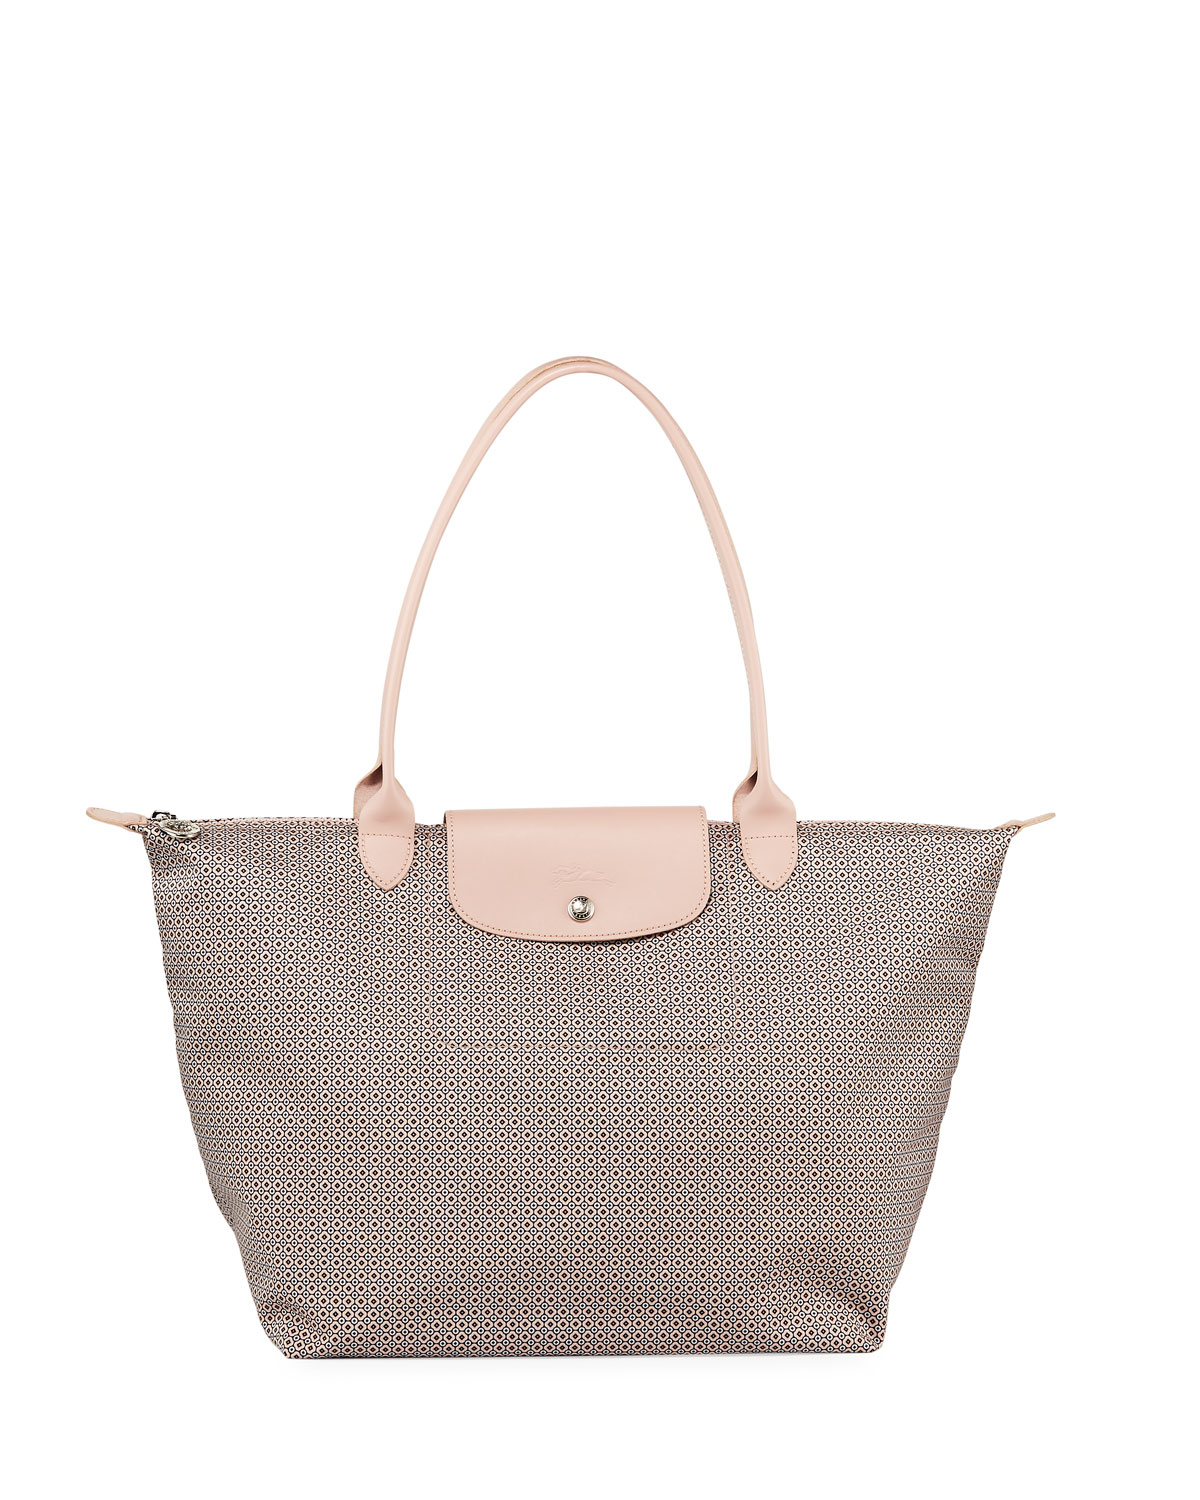 Longchamp Le Pliage Dandy Shoulder Tote Bag  e96b28fa31d79